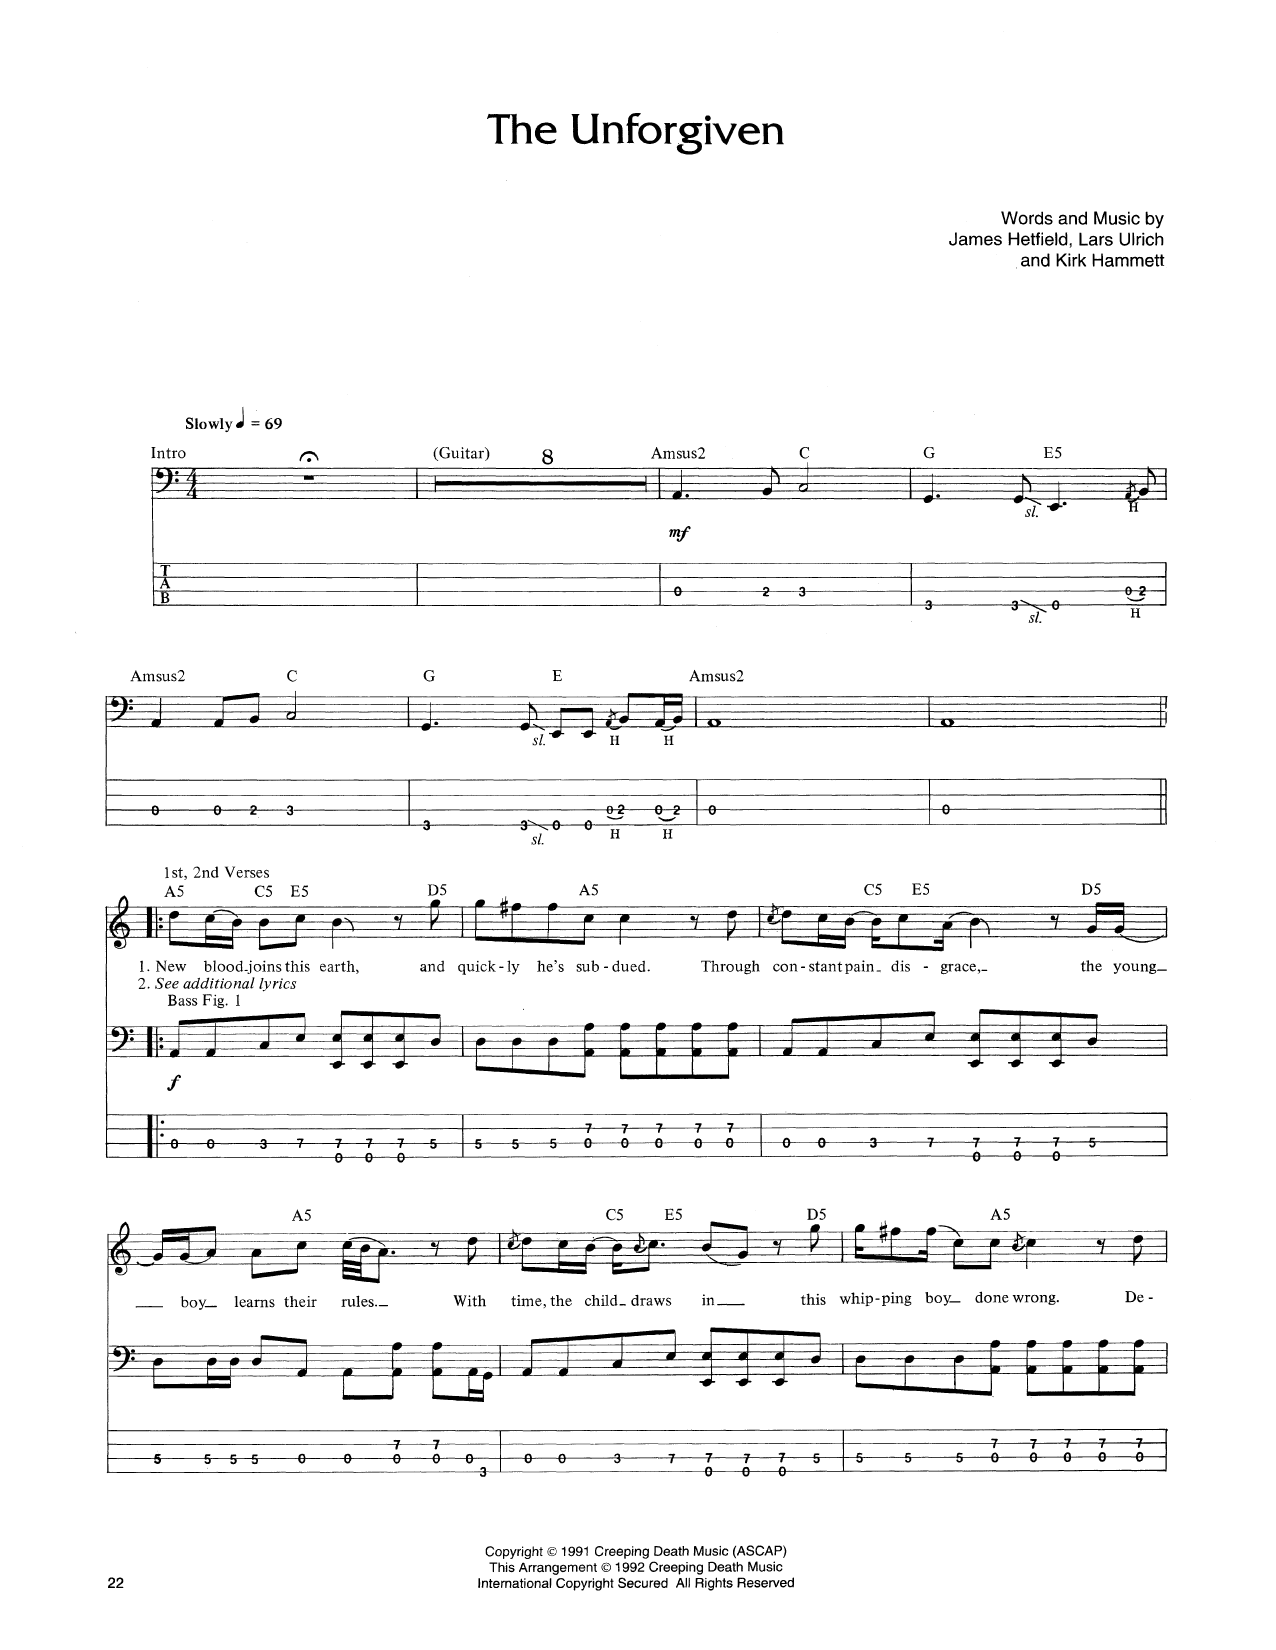 Tablature guitare The Unforgiven de Metallica - Tablature Basse